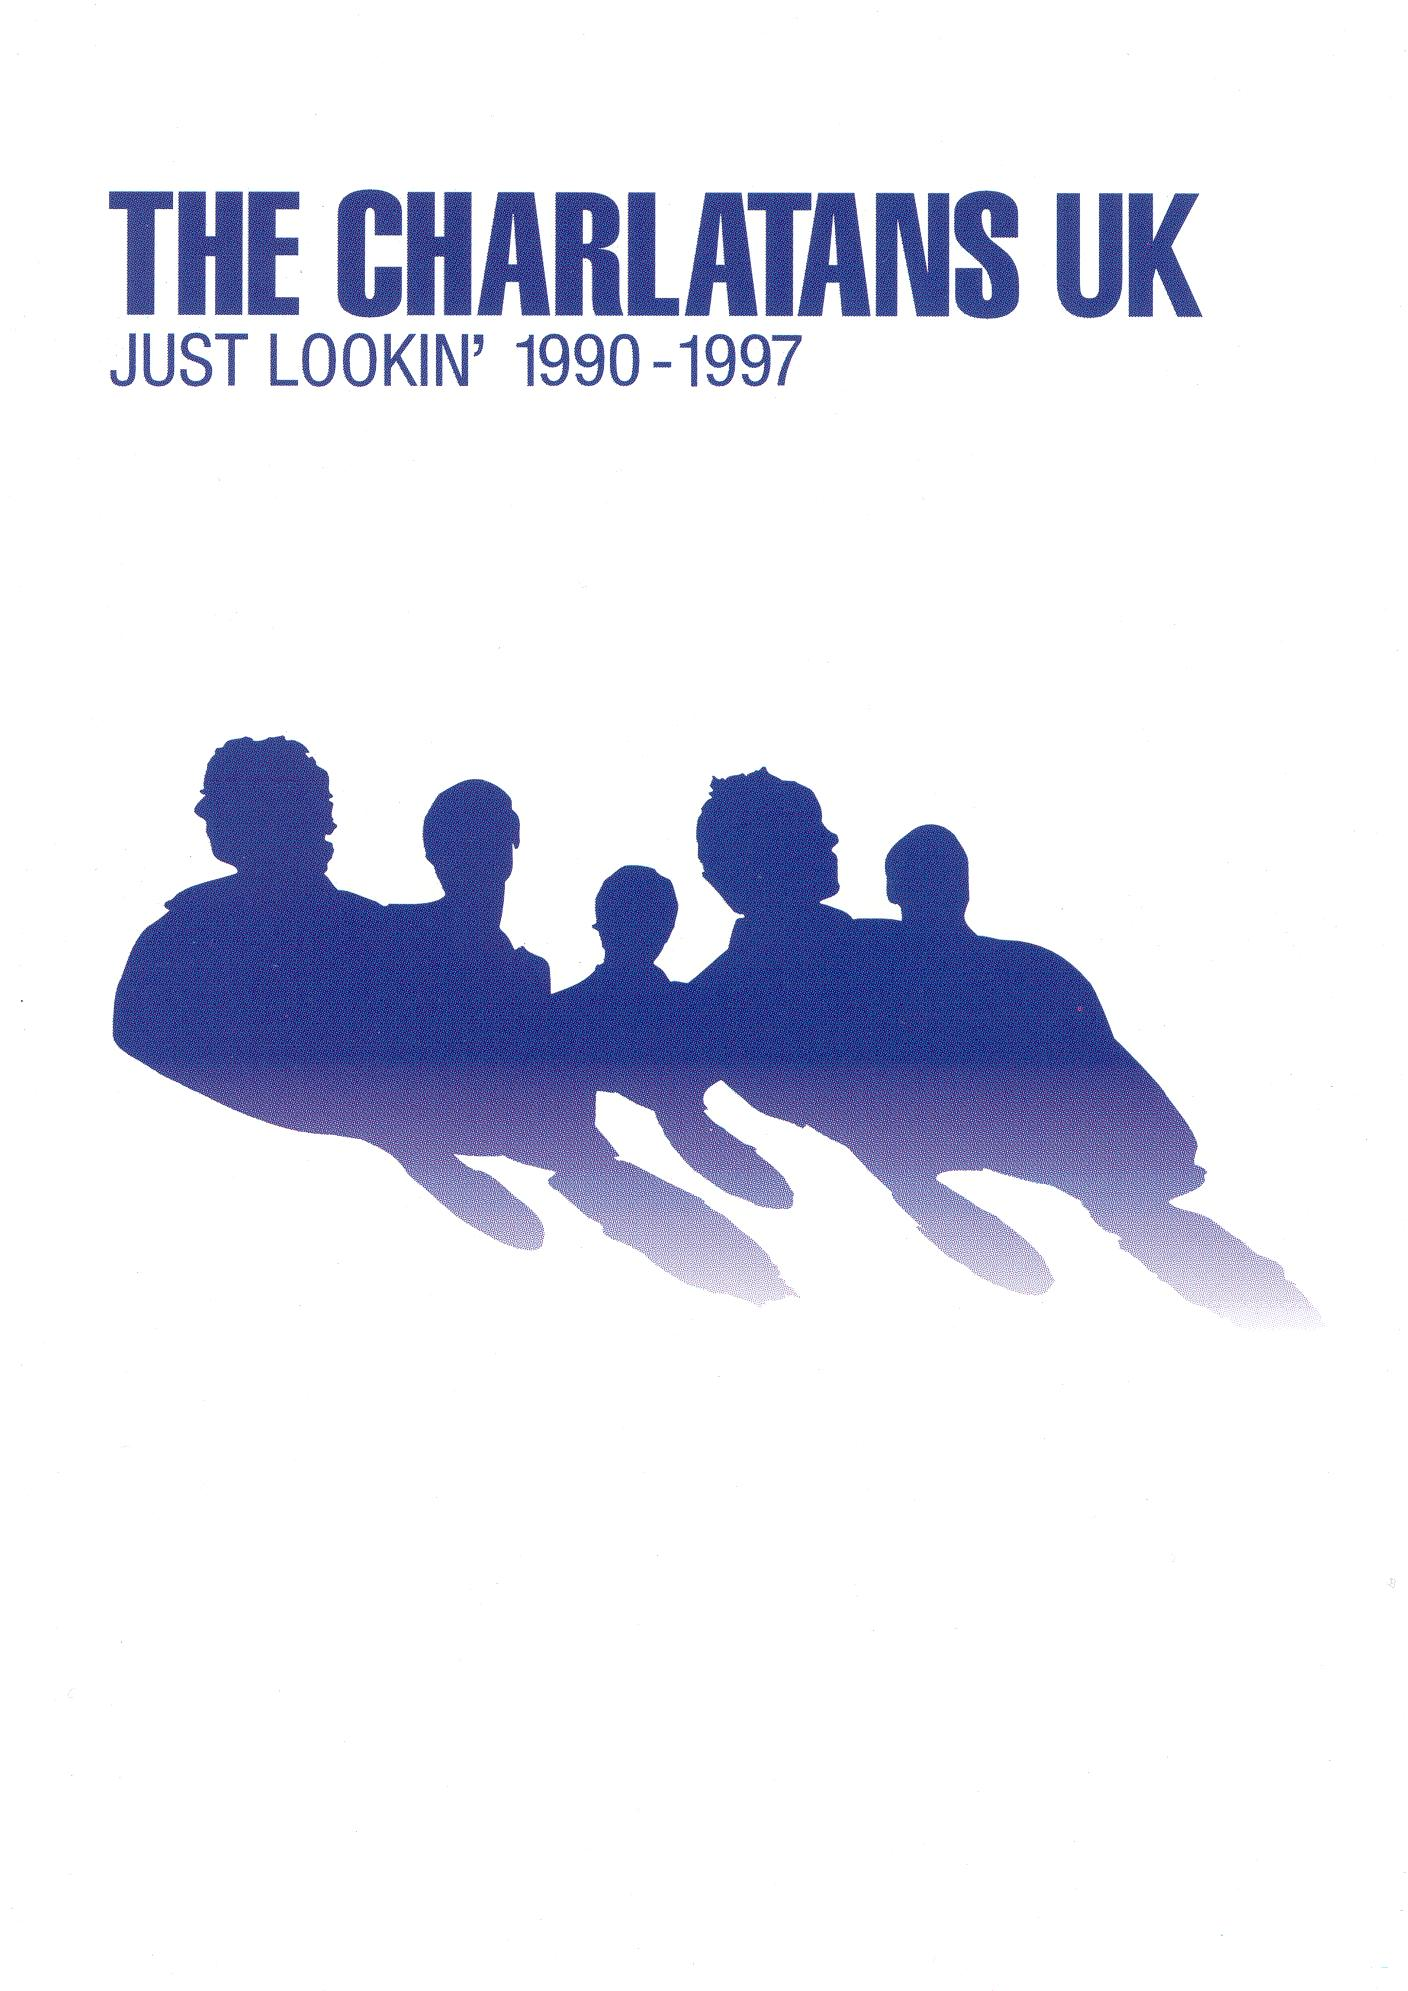 The Charlatans UK: Just Lookin' - 1990-1997